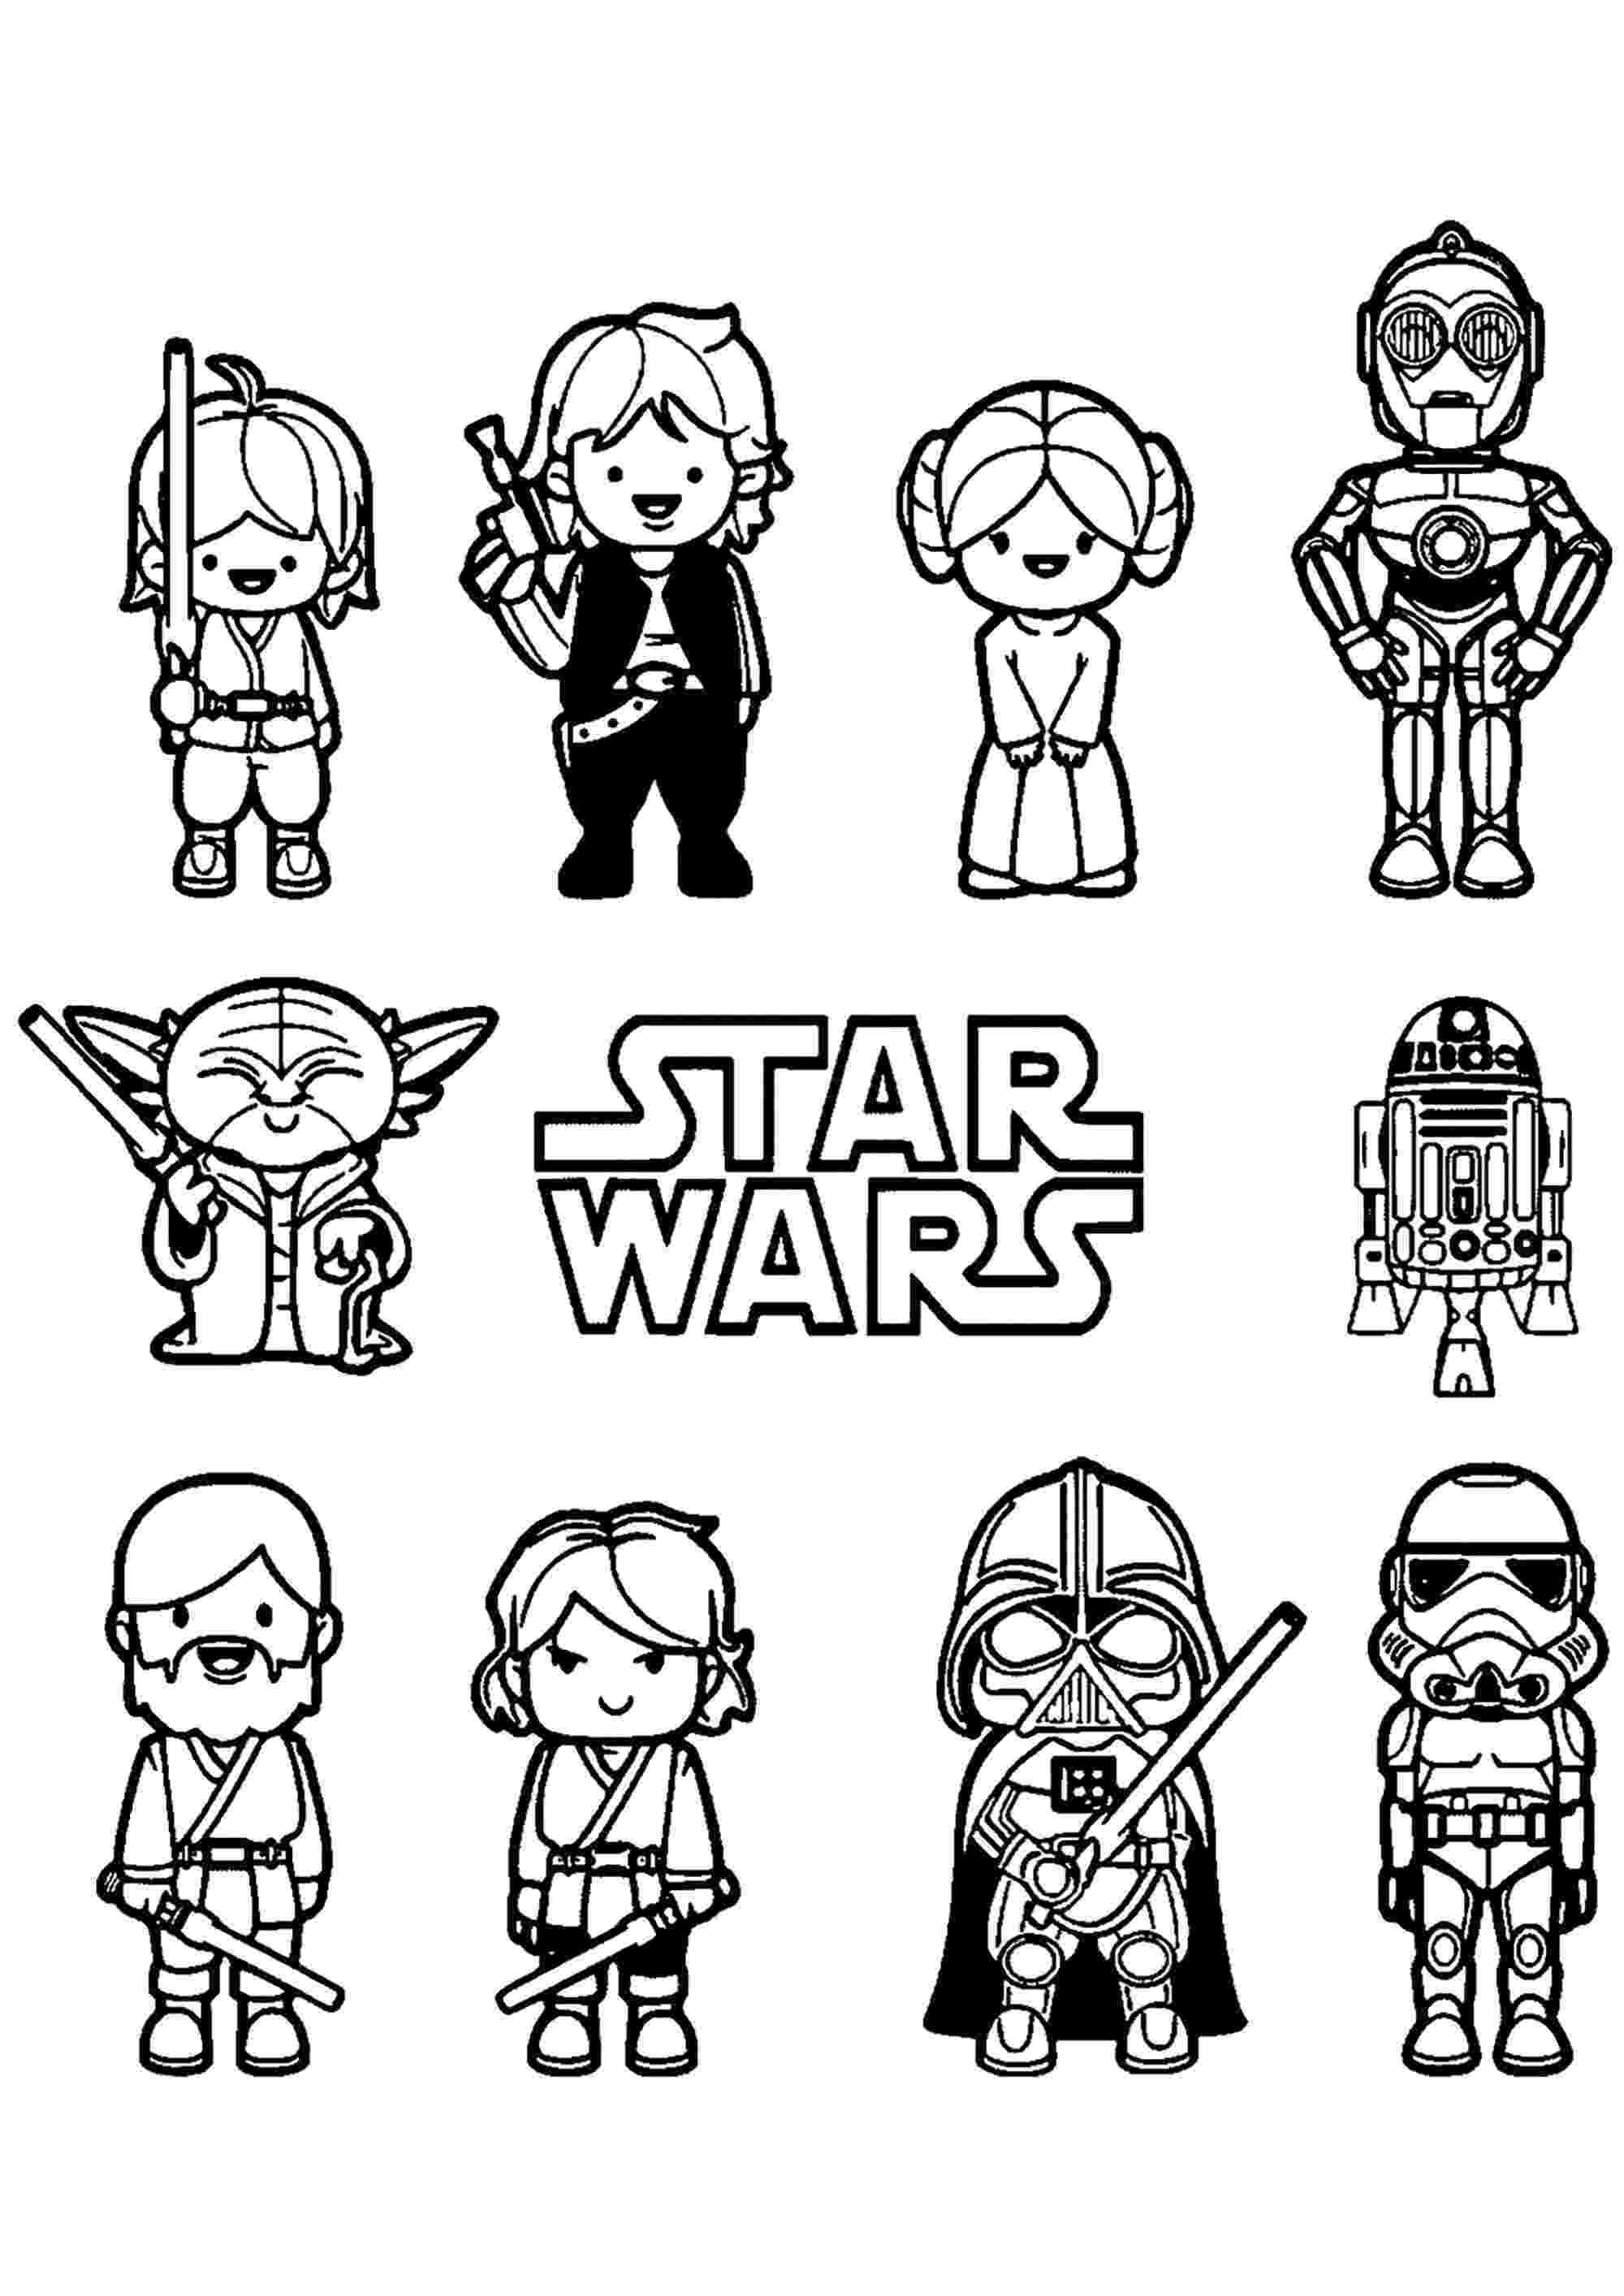 starwars colouring star wars coloring pages 2018 dr odd starwars colouring